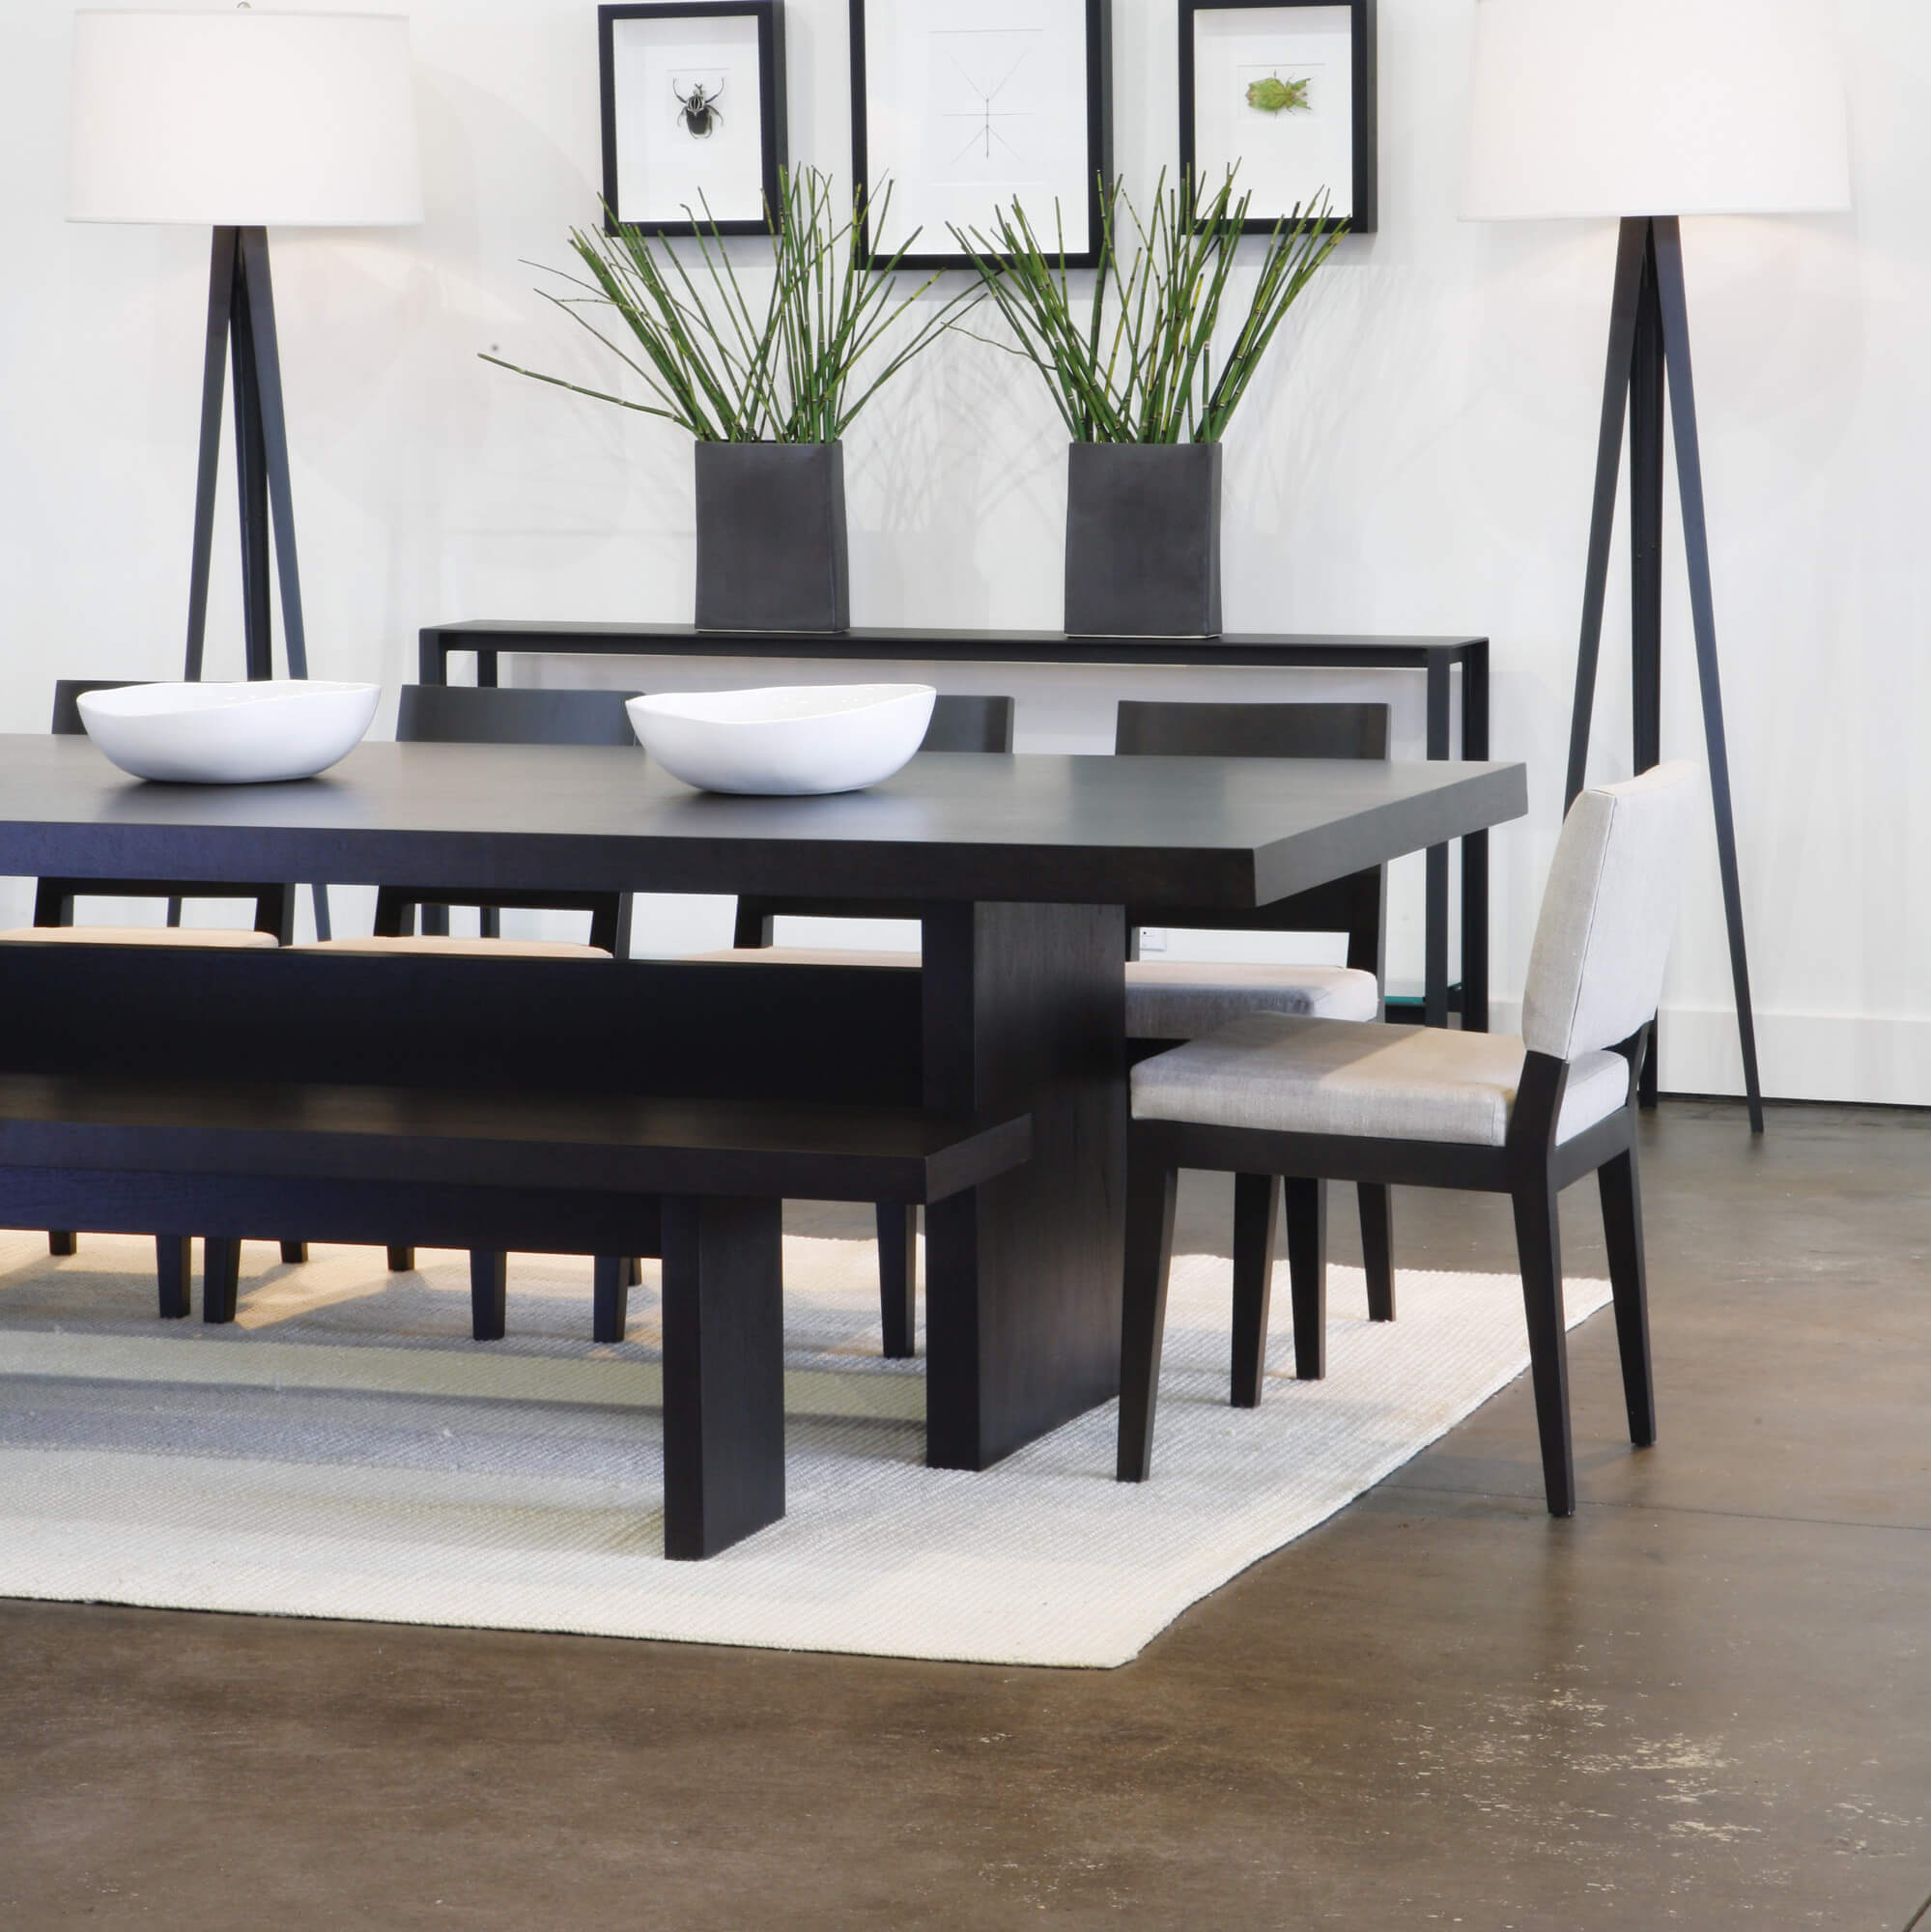 5 Piece Modern Dining Room Set With Bench. This Is A Great Dining Room  Furniture